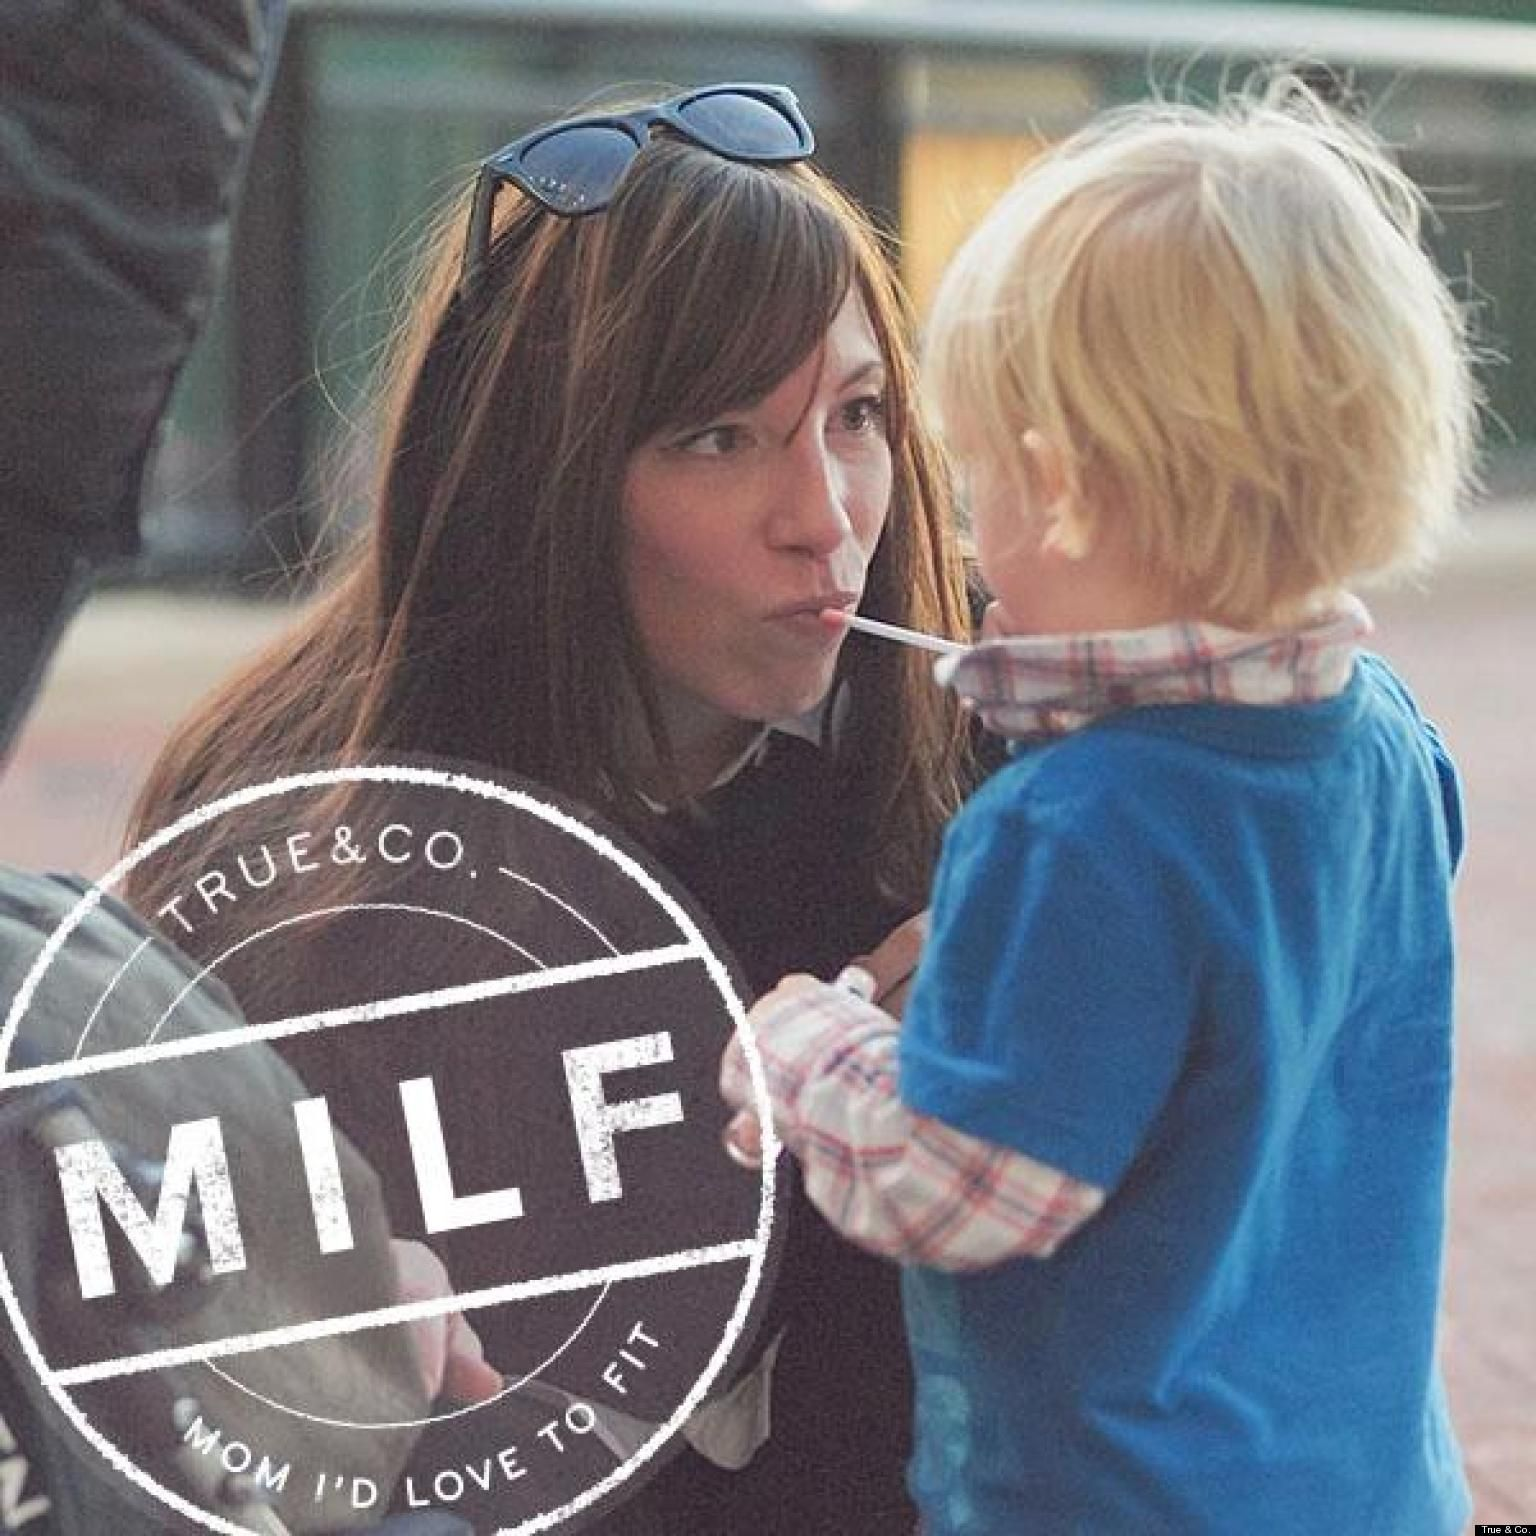 What does the word milf mean